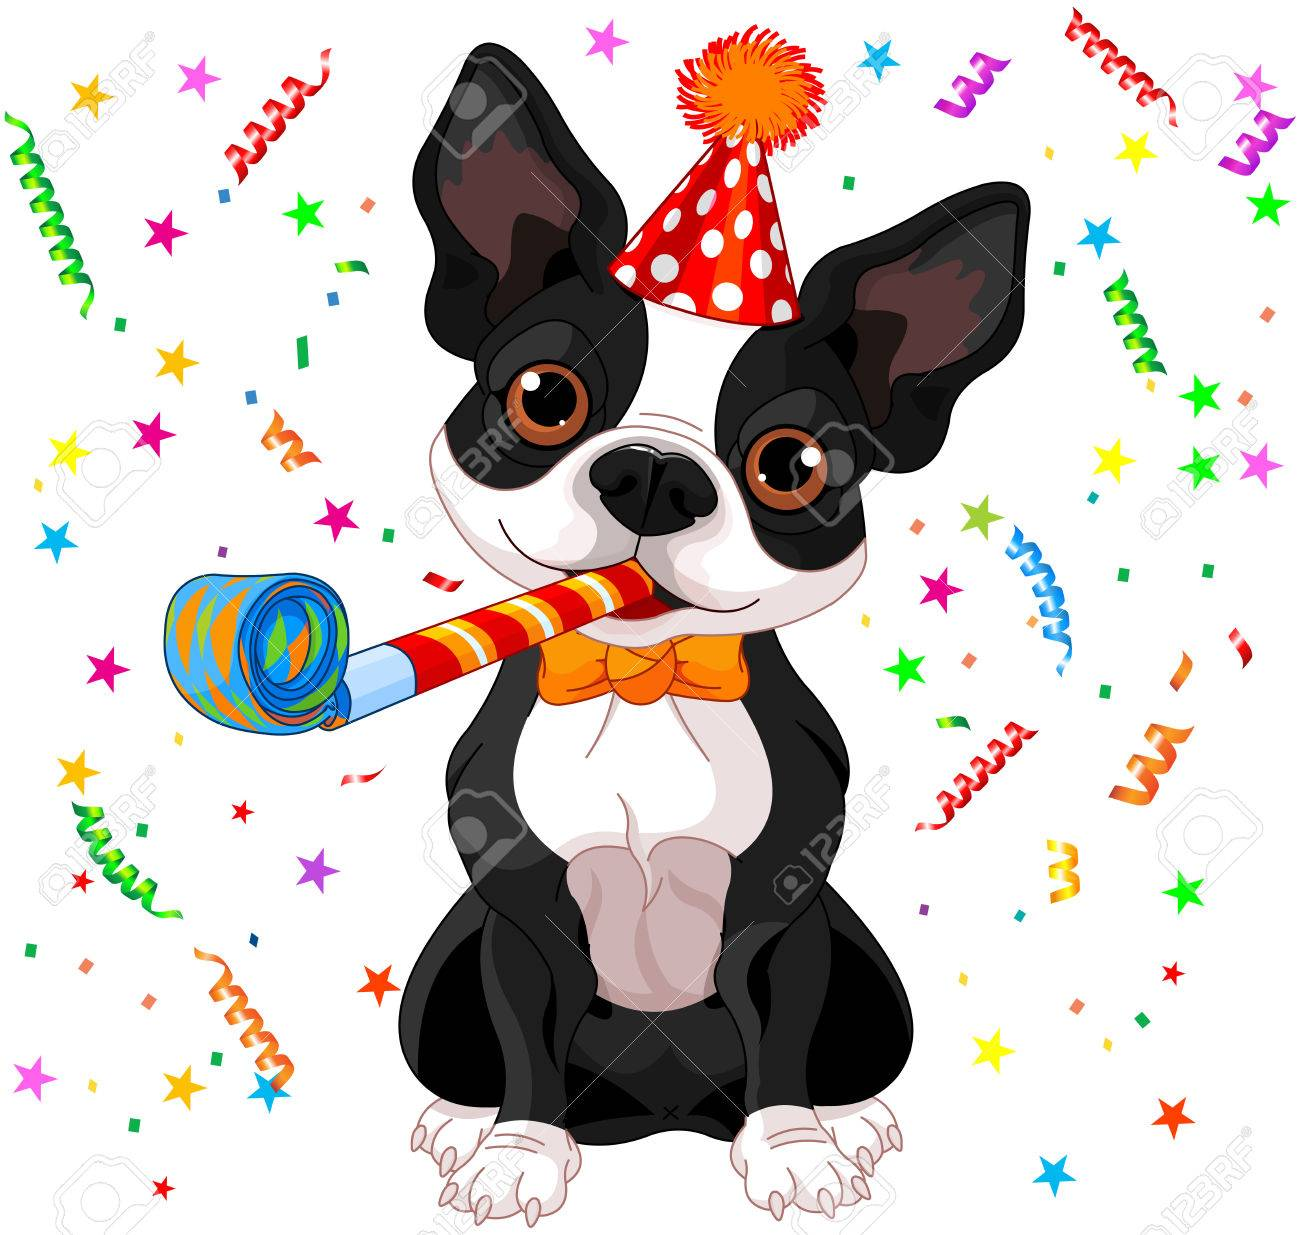 Le chien, un loup civilisé par Evelyne Teroni et Jennifer Cattet 35588778-illustration-of-cute-boston-terrier-celebrating